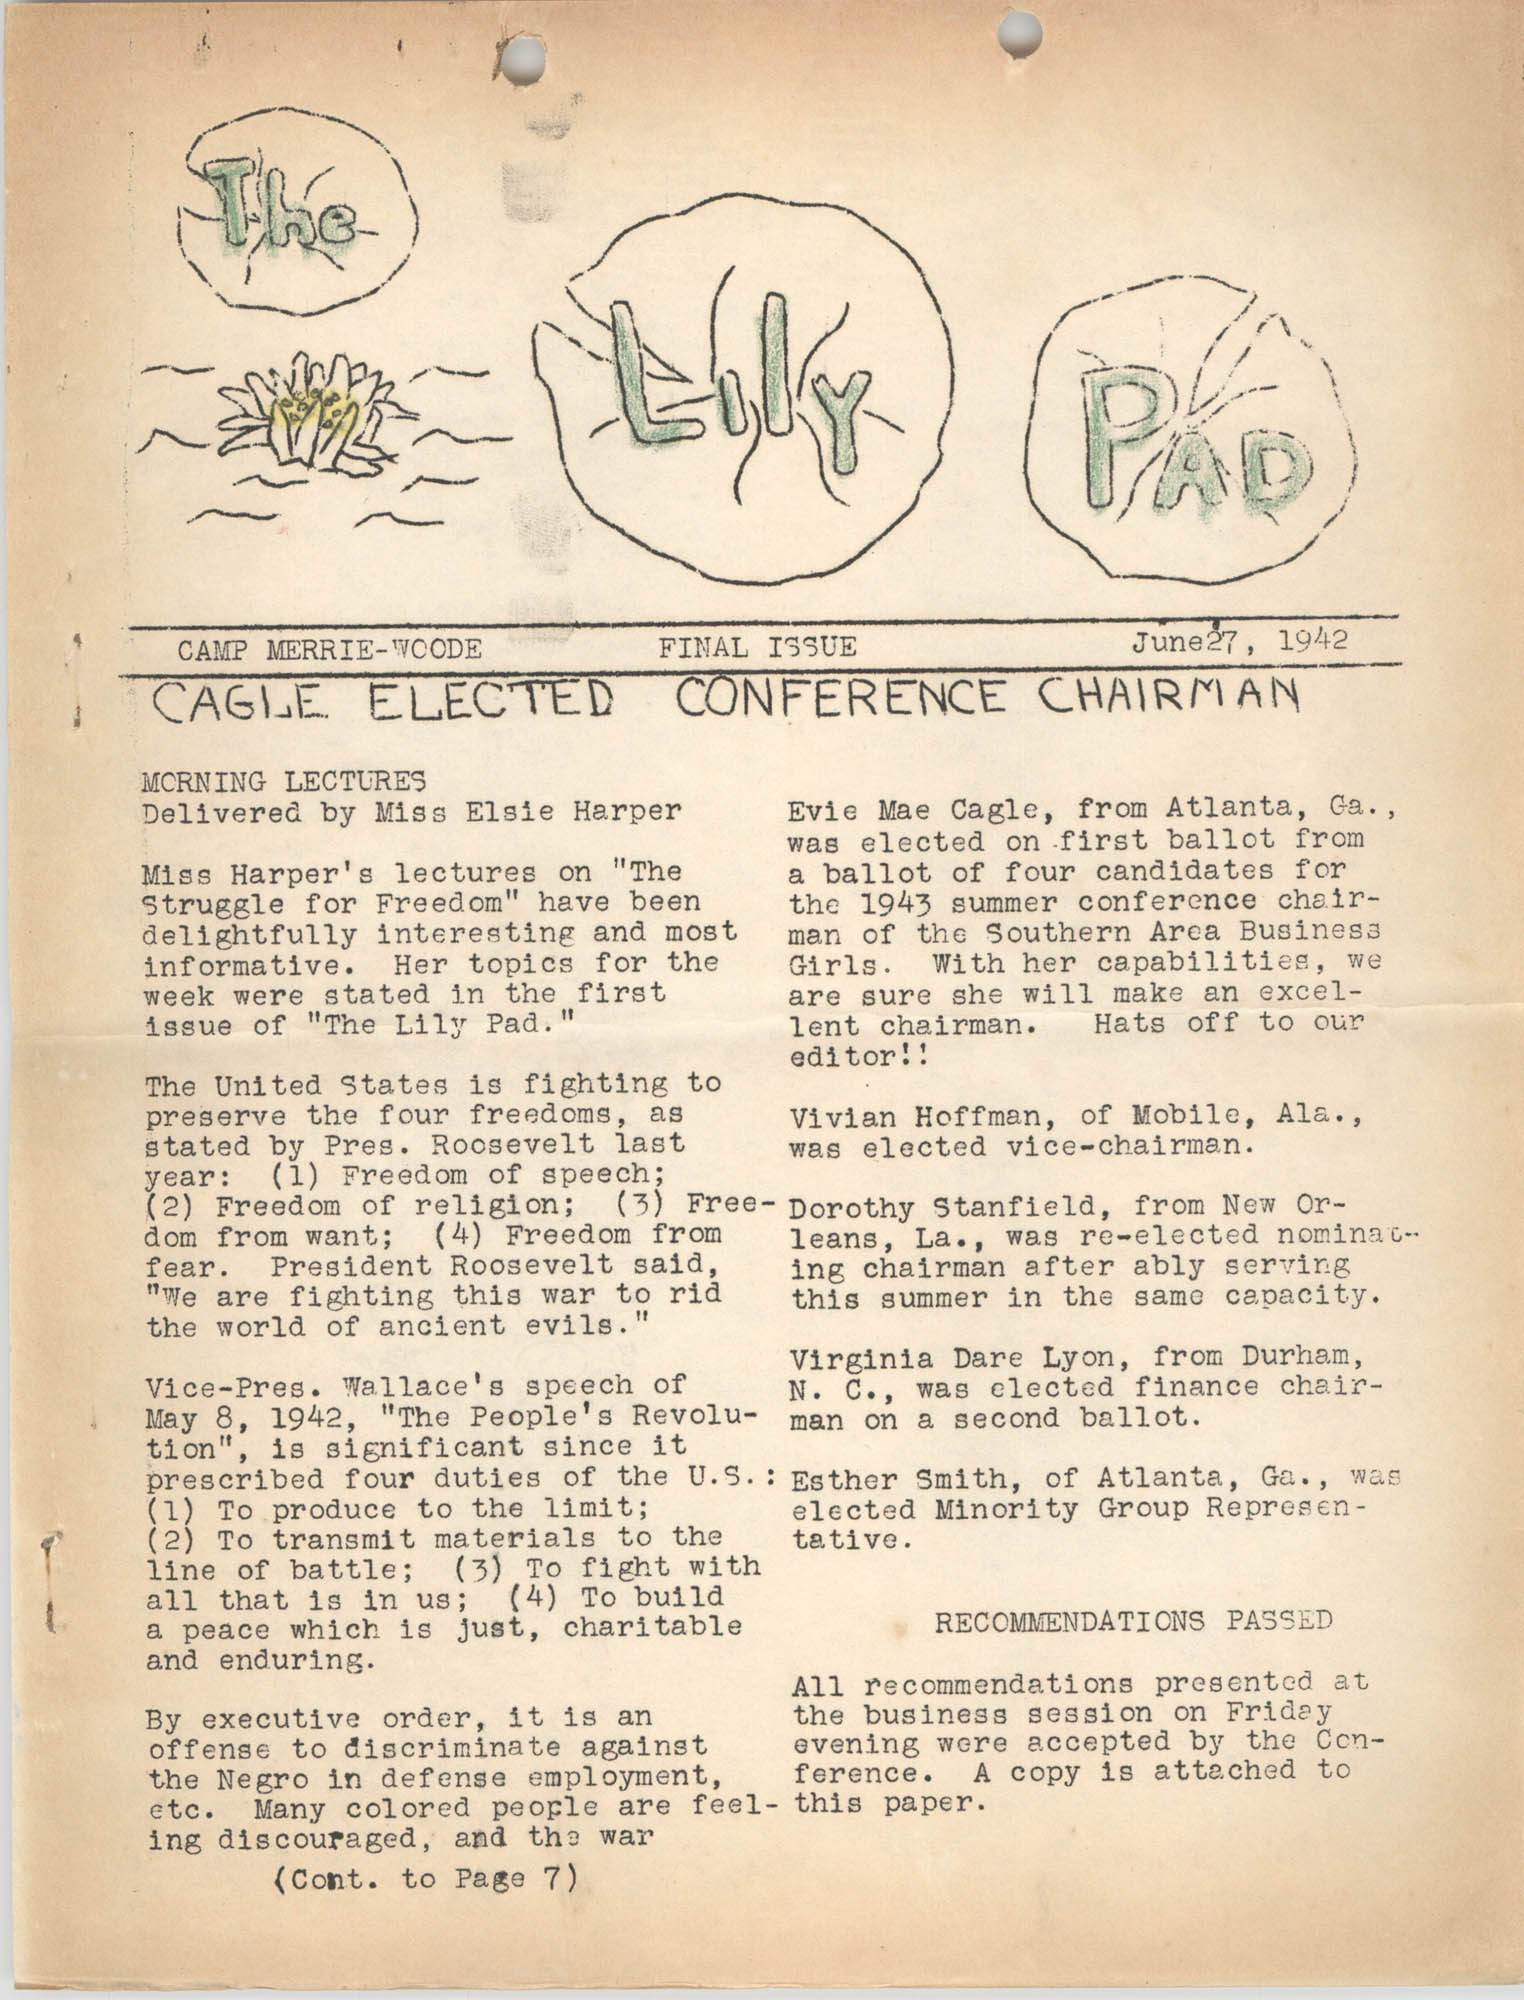 The Lily Pad, Camp Merrie-Woode Newsletter, June 27, 1942, Page 1